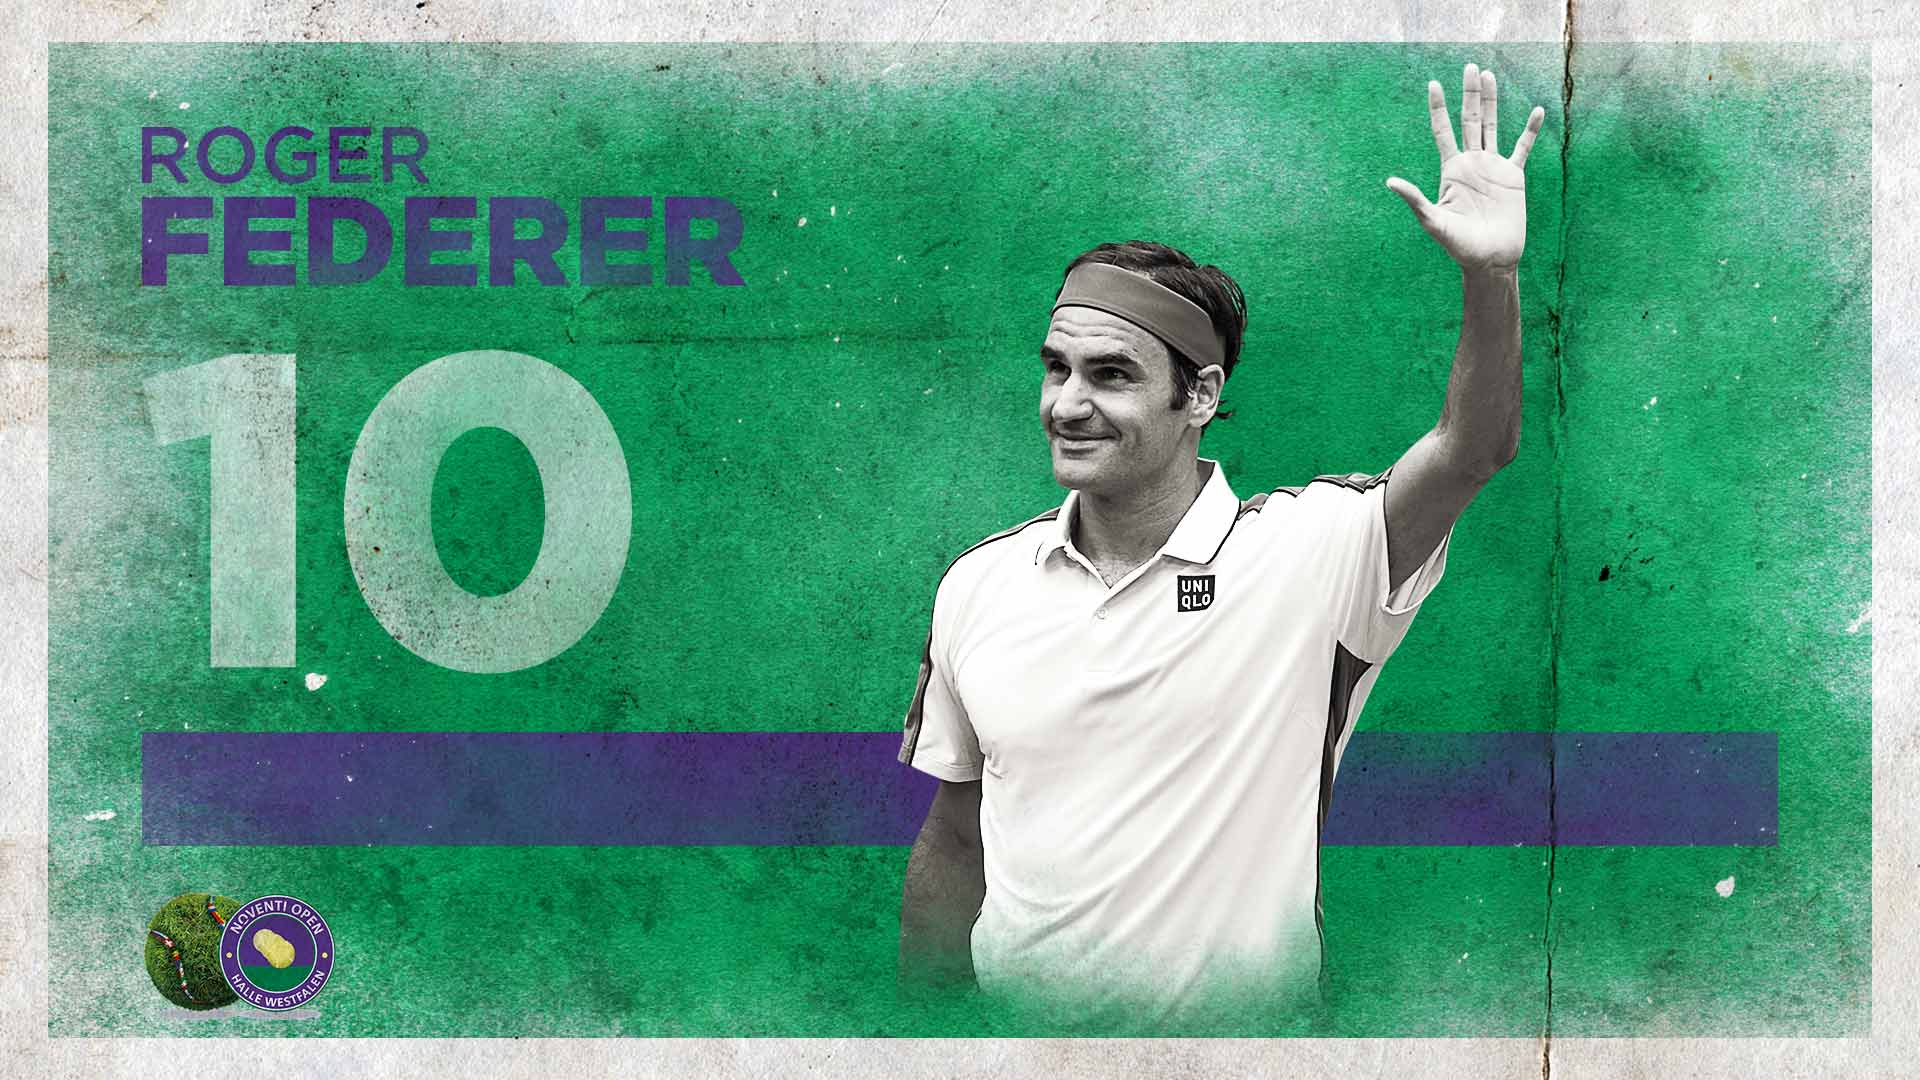 Roger Federer wins his 10th title in Halle